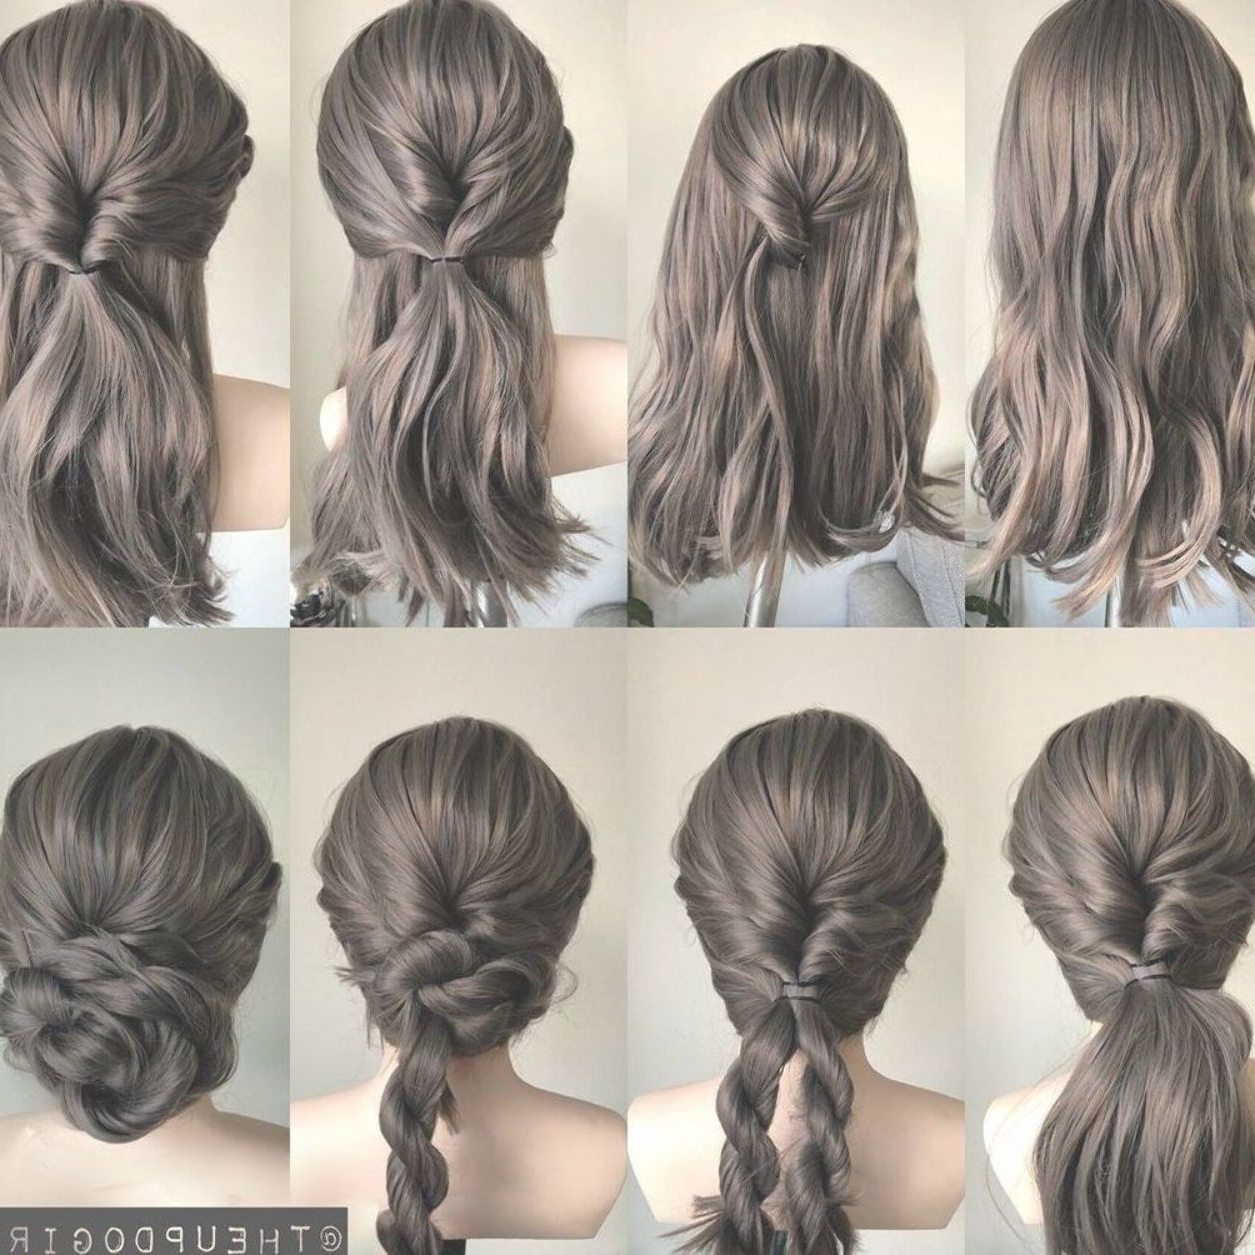 Gorgeous And Easy Homecoming Hairstyles Tutorial For Women Easy Hairstyles For Medium Length Hair For Homecoming